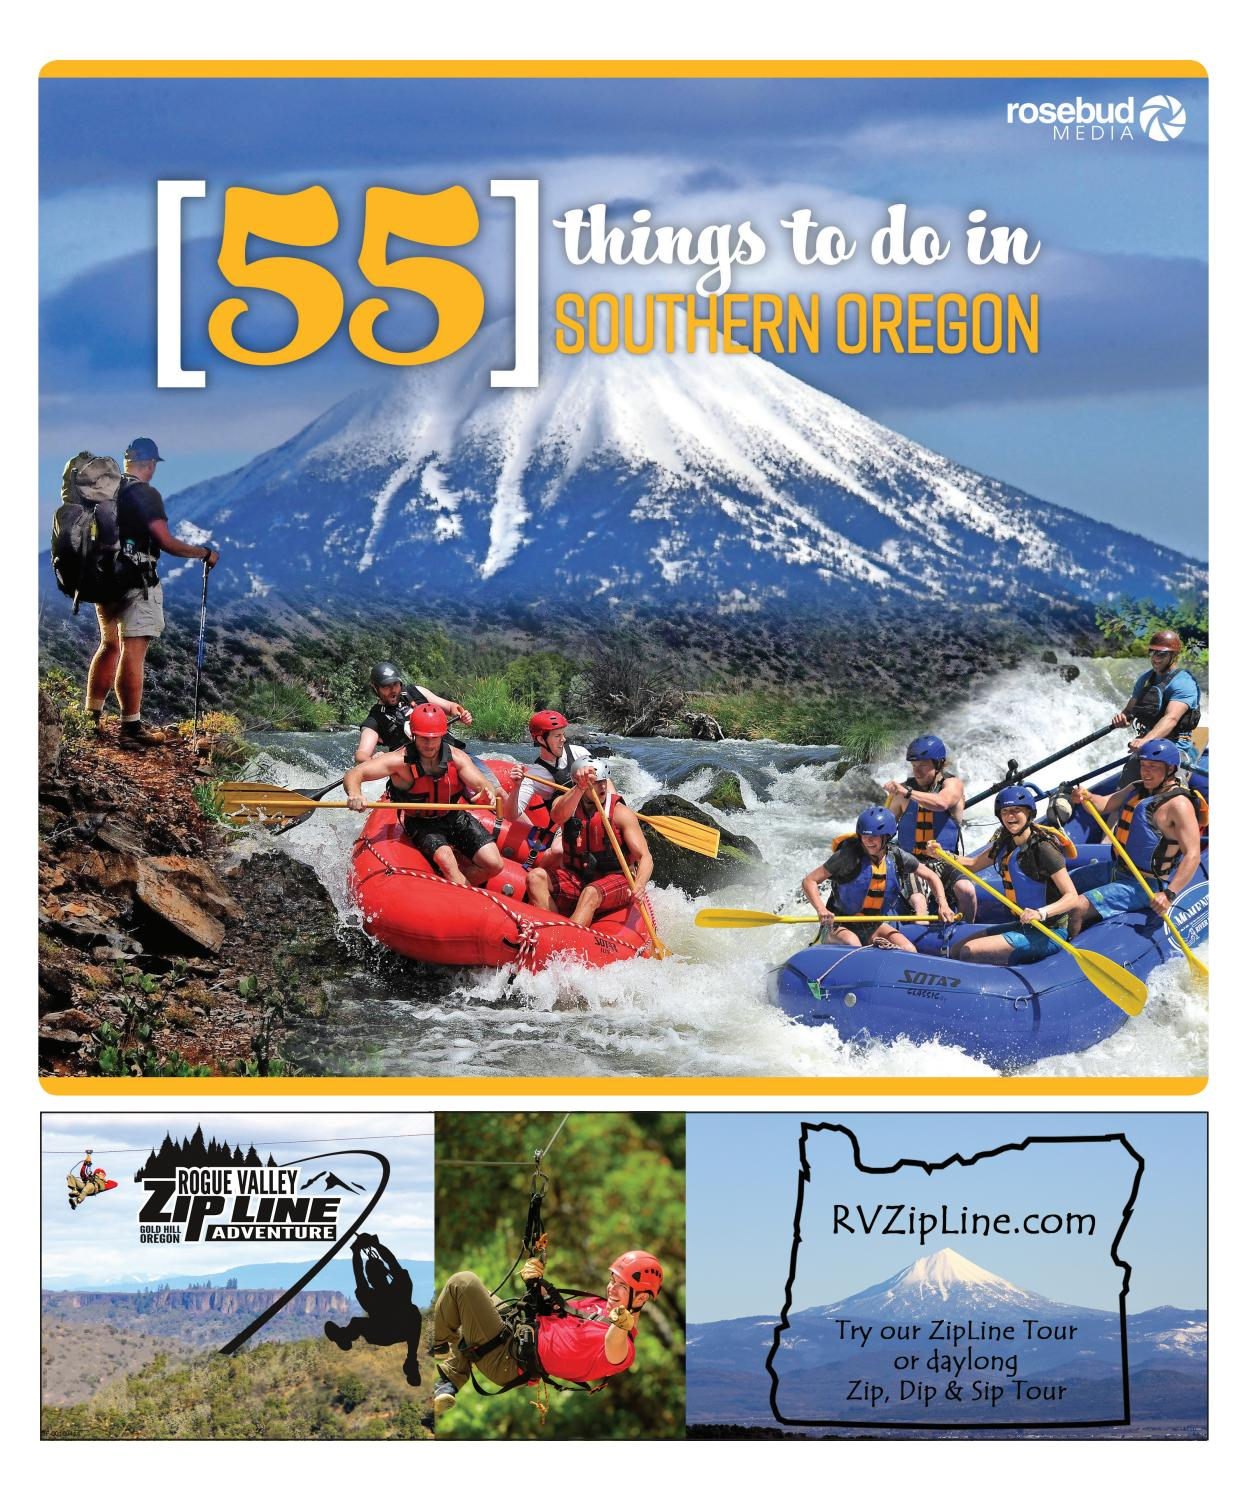 55 Things to do in Southern Oregon